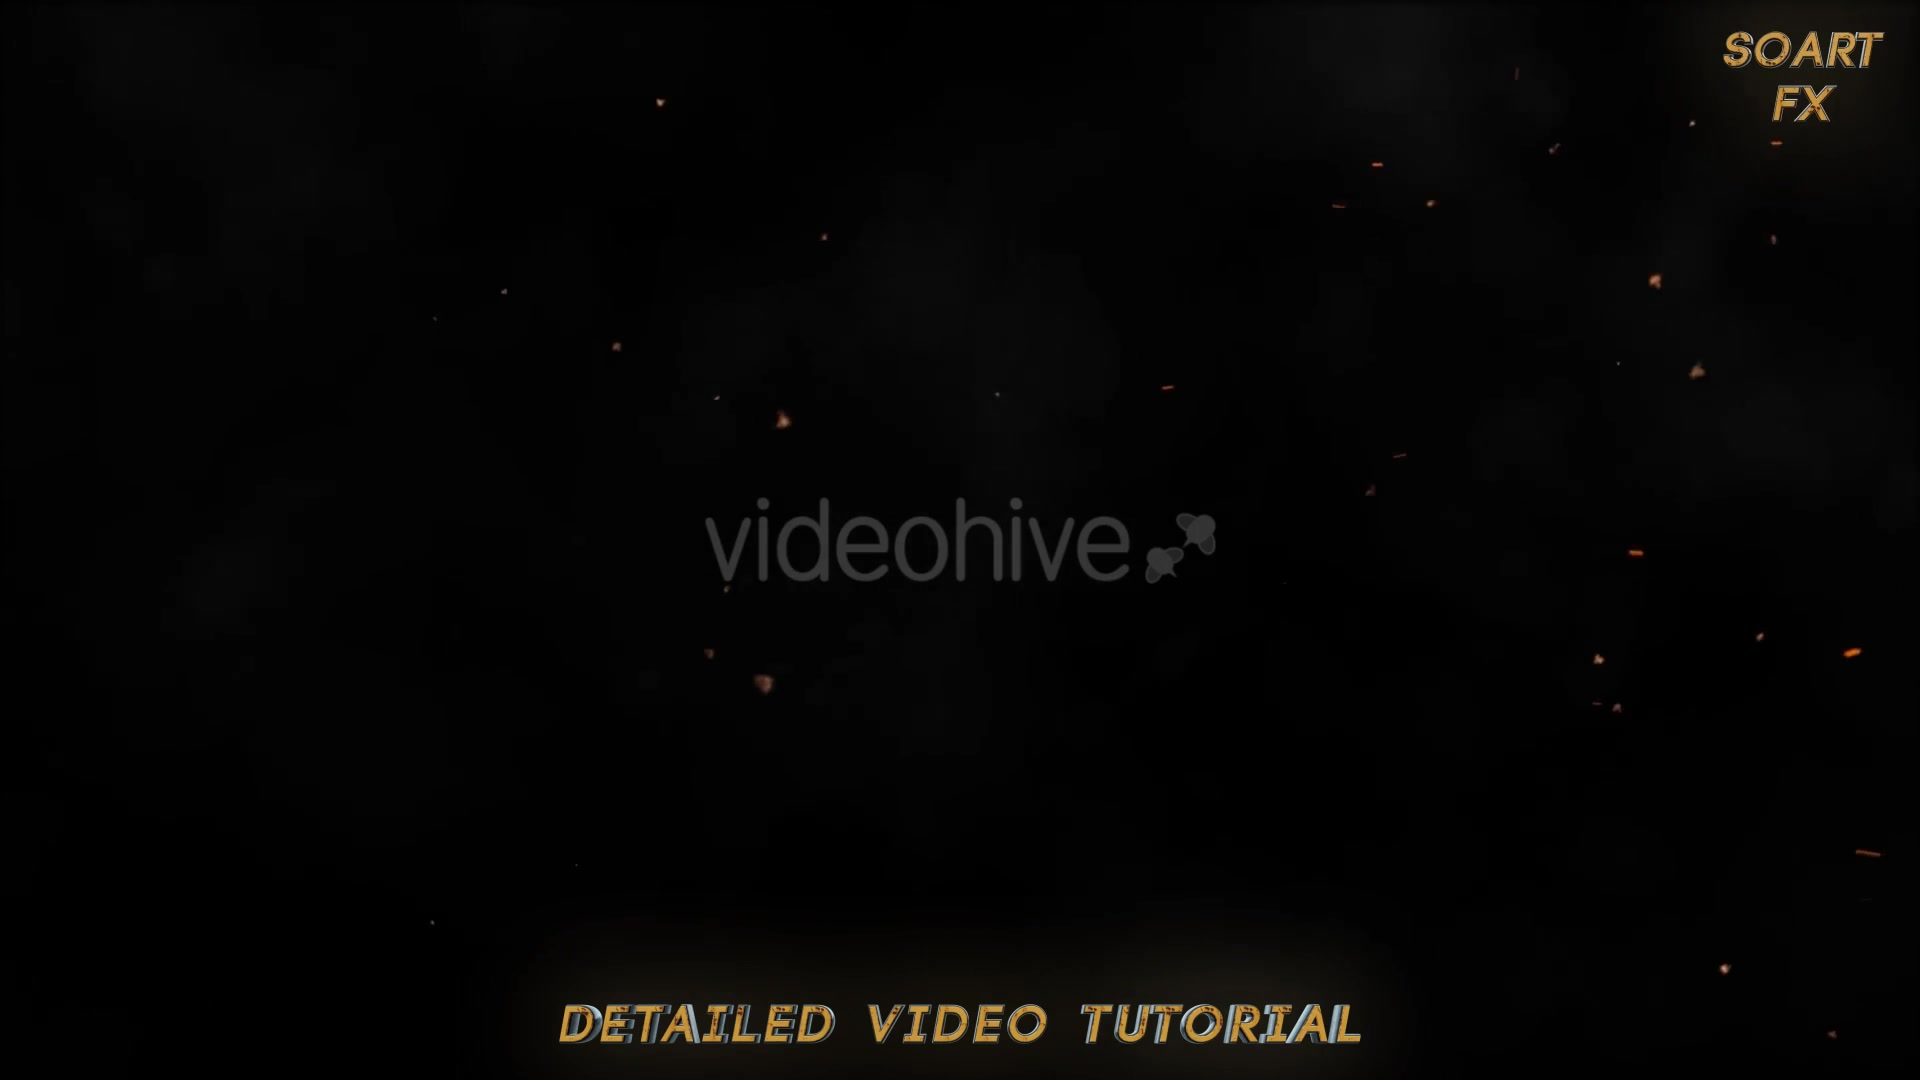 Particle FX Elements - Download Videohive 16231775